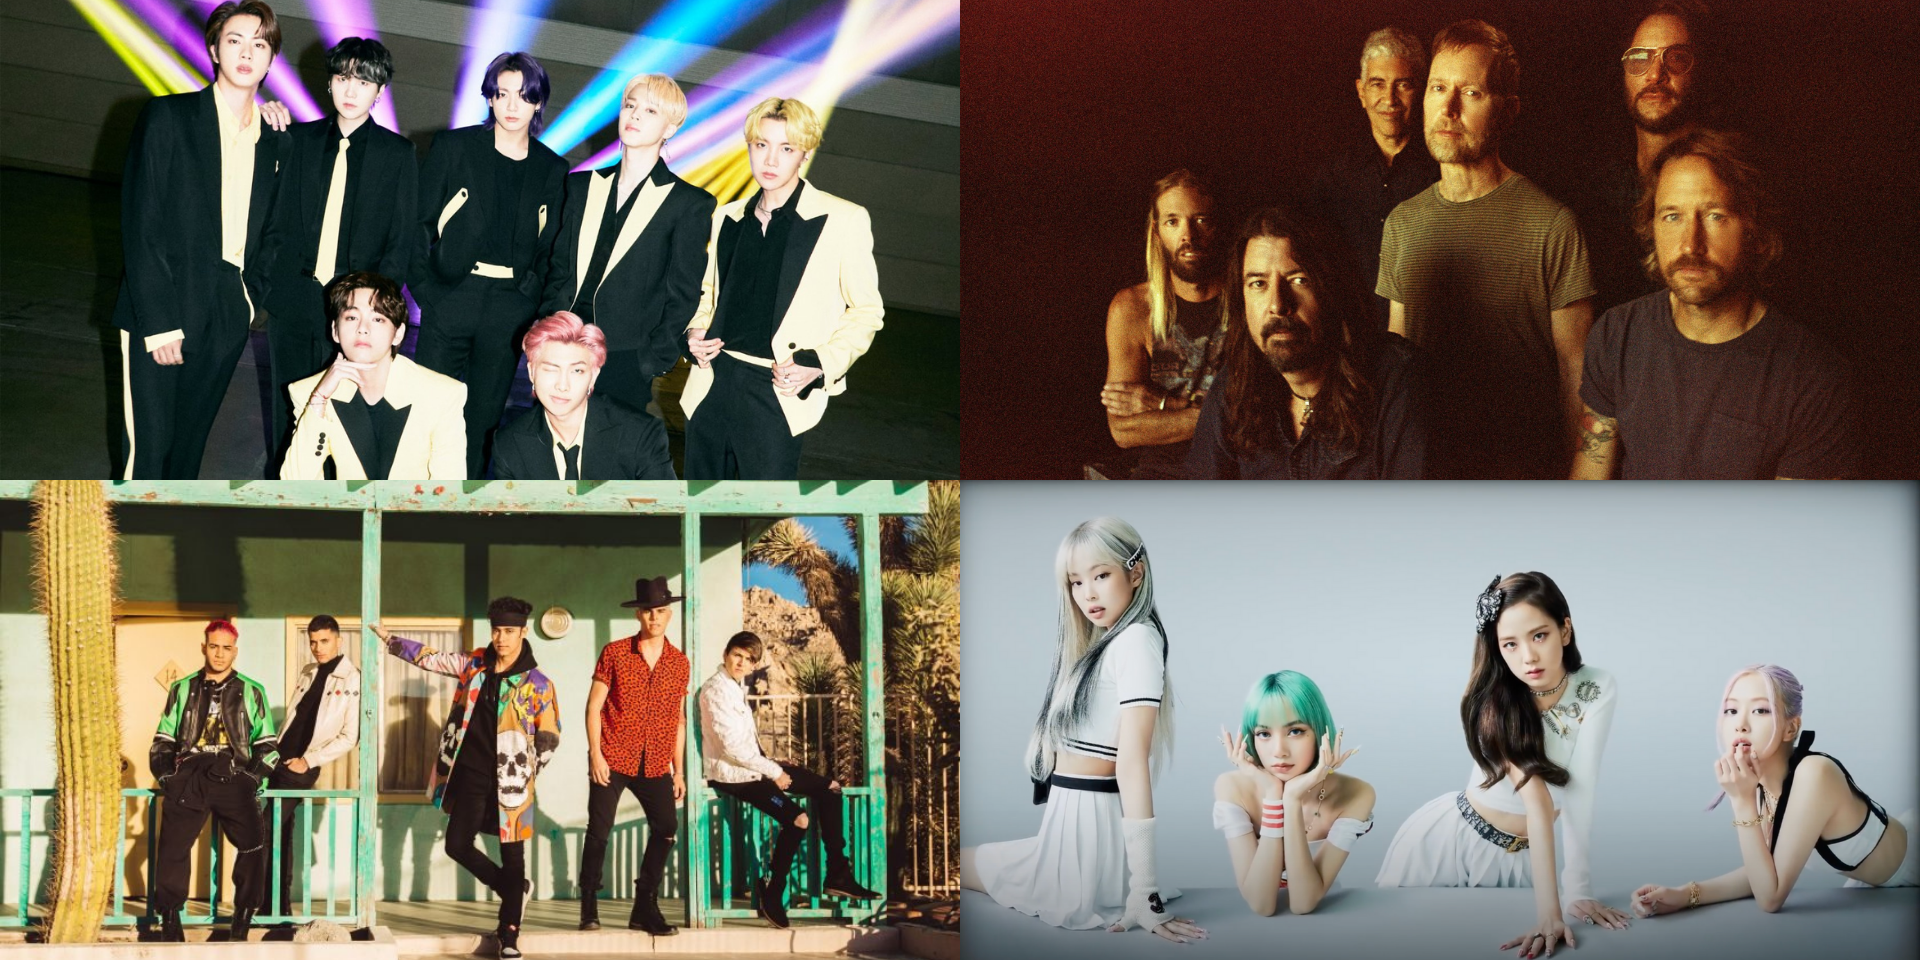 BTS, BLACKPINK, Foo Fighters, CNCO, and more nominated for Group of the Year at the 2021 MTV Video Music Awards